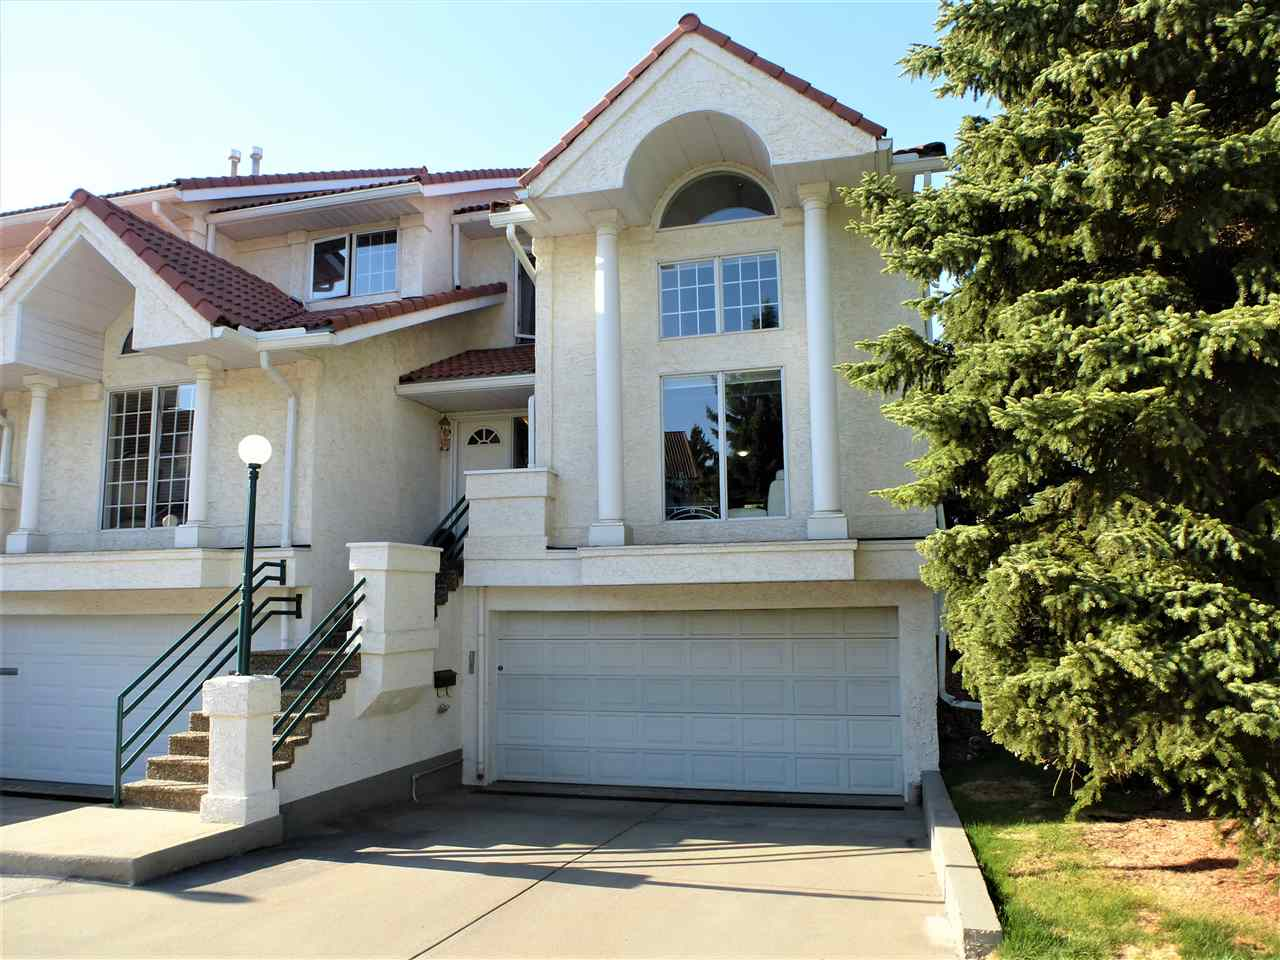 FEATURED LISTING: 4652 151 Street Edmonton